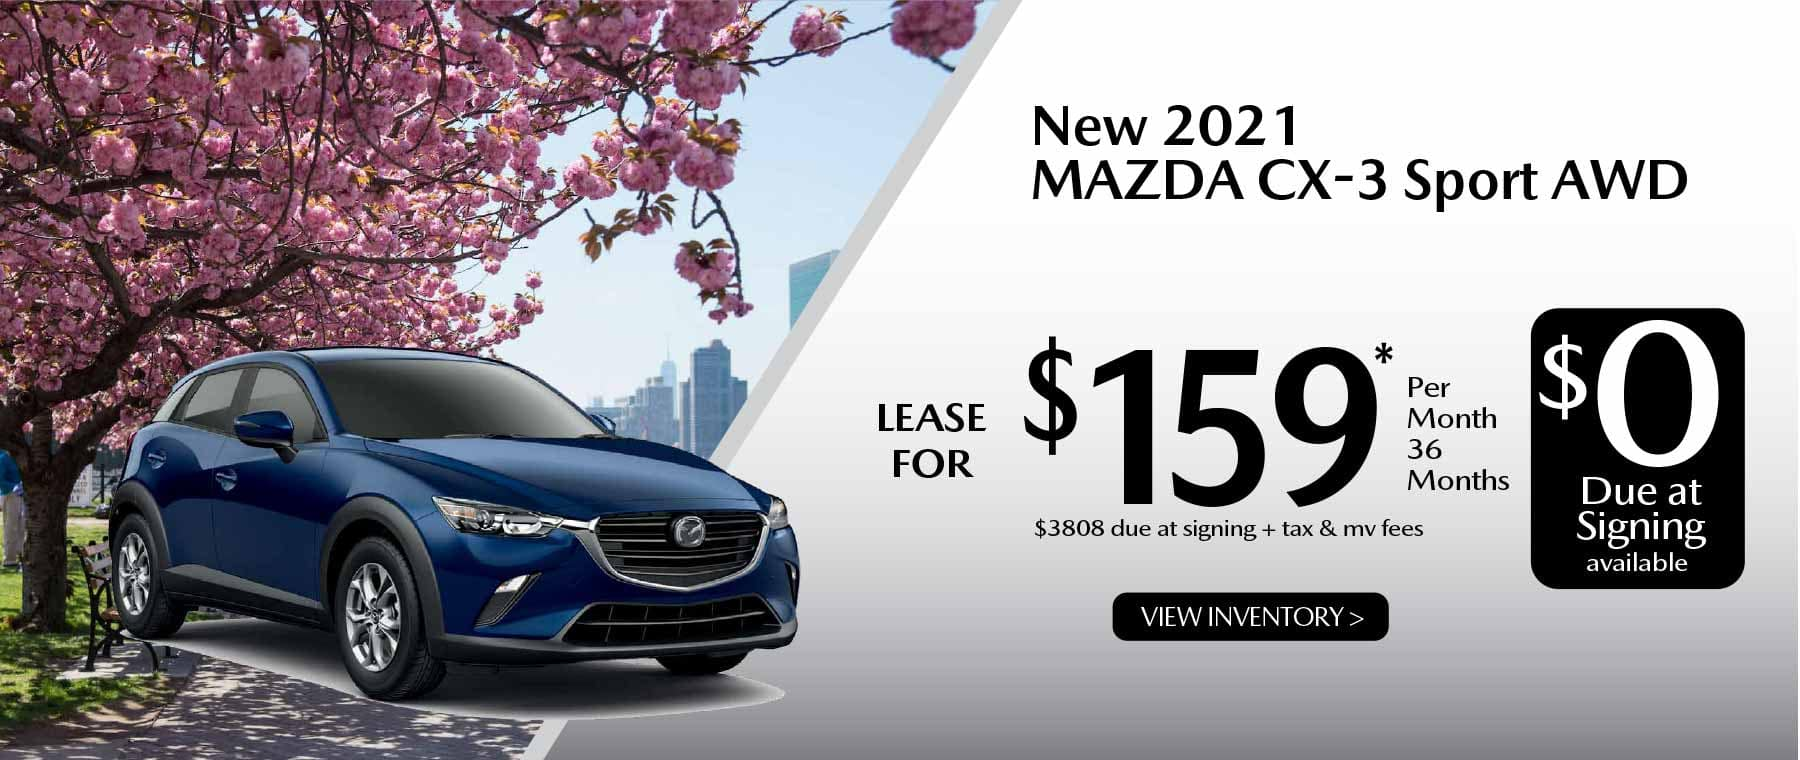 05hi CX-3 New Lease Special Offer Garden City Mazda NY